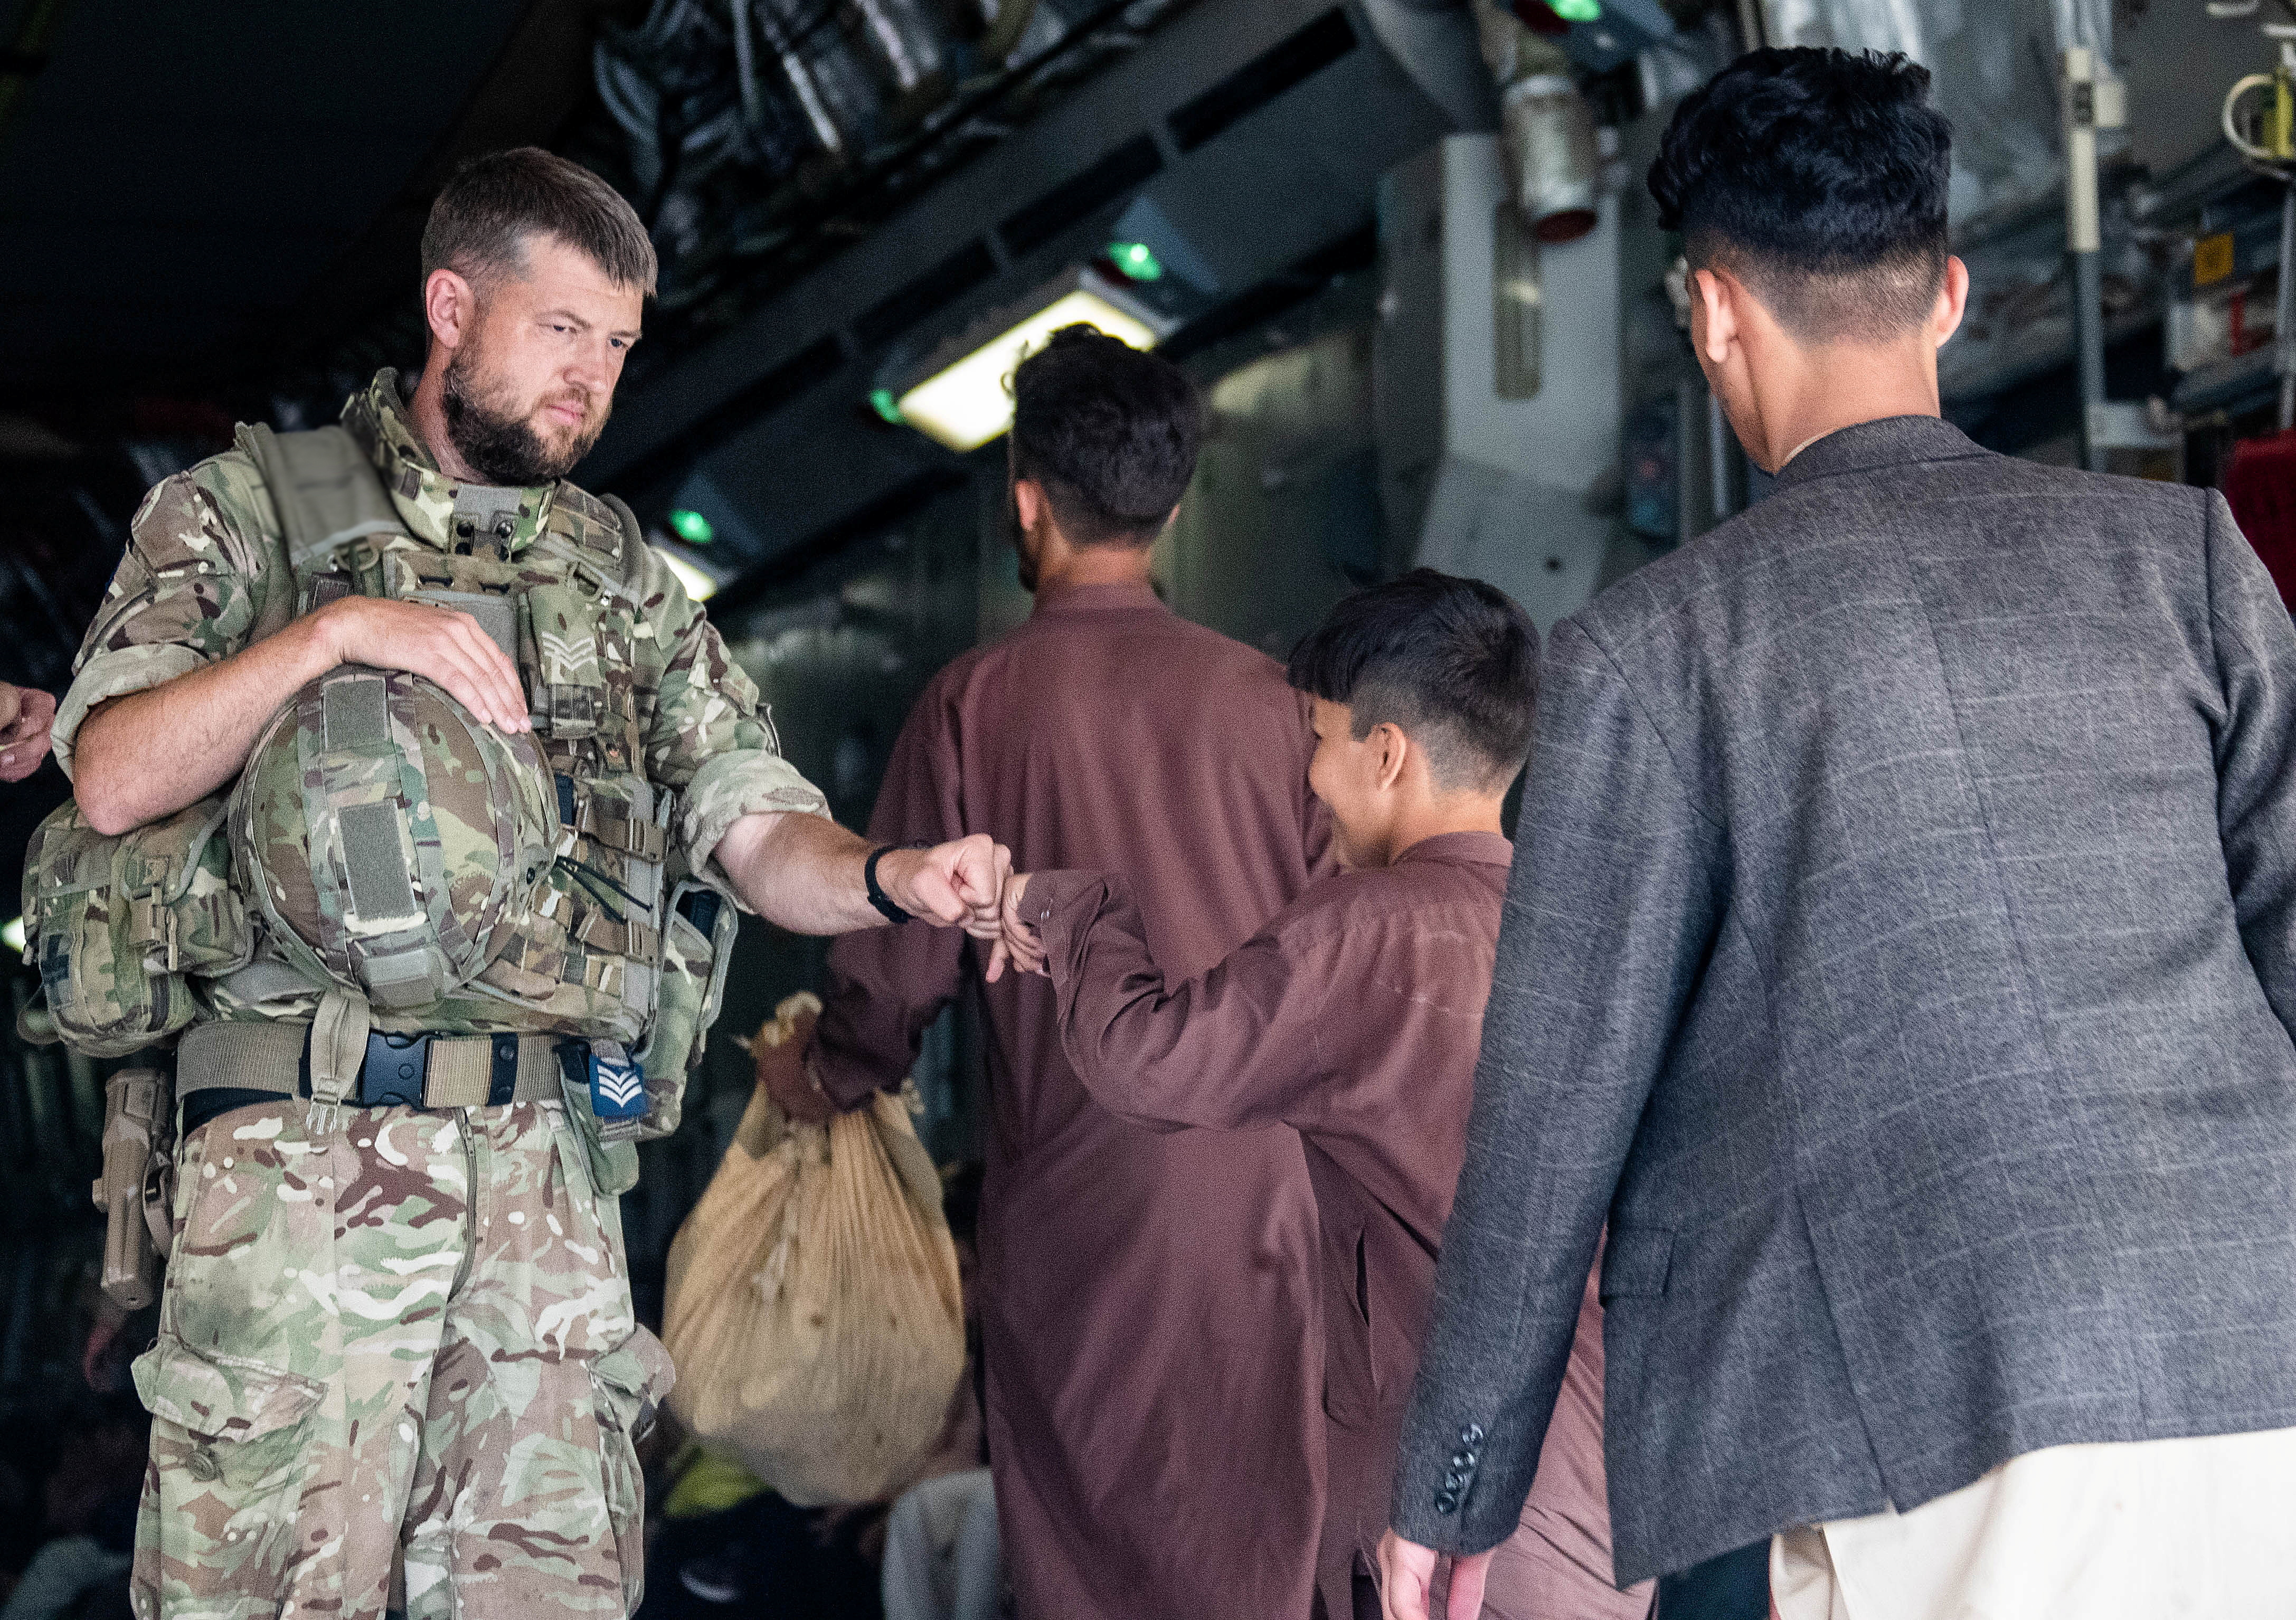 A member of the UK Armed Forces bumps fists with a child as he continues to take part in the evacuation of entitled personnel from Kabul airport, in Kabul, Afghanistan August 19-22, 2021, in this handout picture obtained by Reuters on August 23, 2021. LPhot Ben Shread/UK MOD Crown copyright 2021/Handout via REUTERS/Files